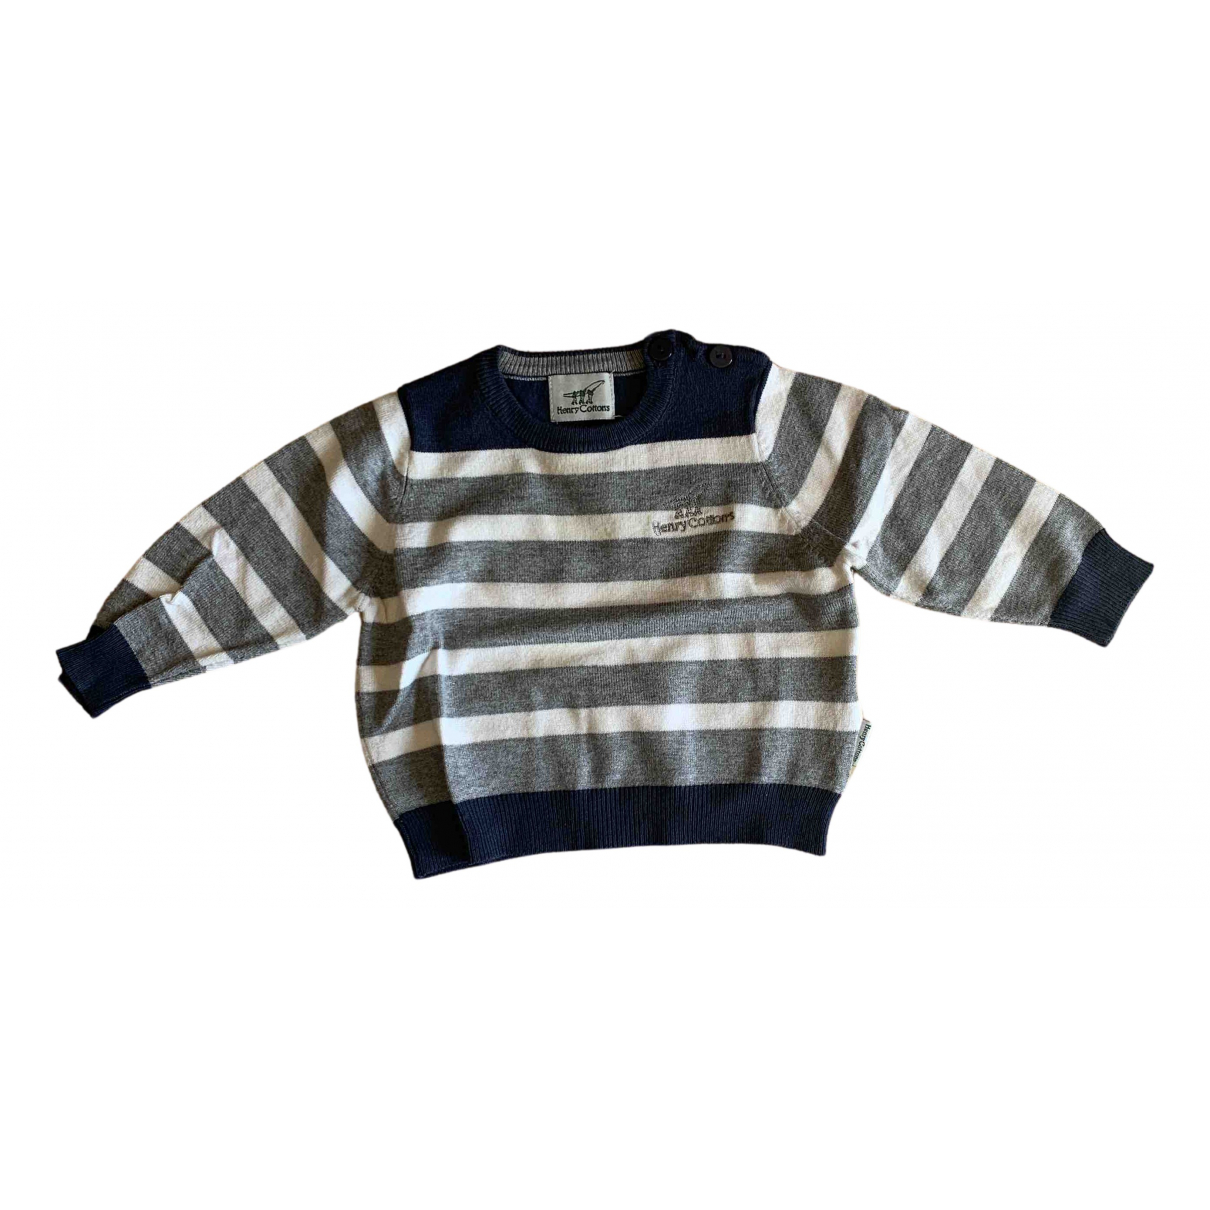 Henry Cotton N Multicolour Knitwear for Kids 6 months - up to 67cm FR